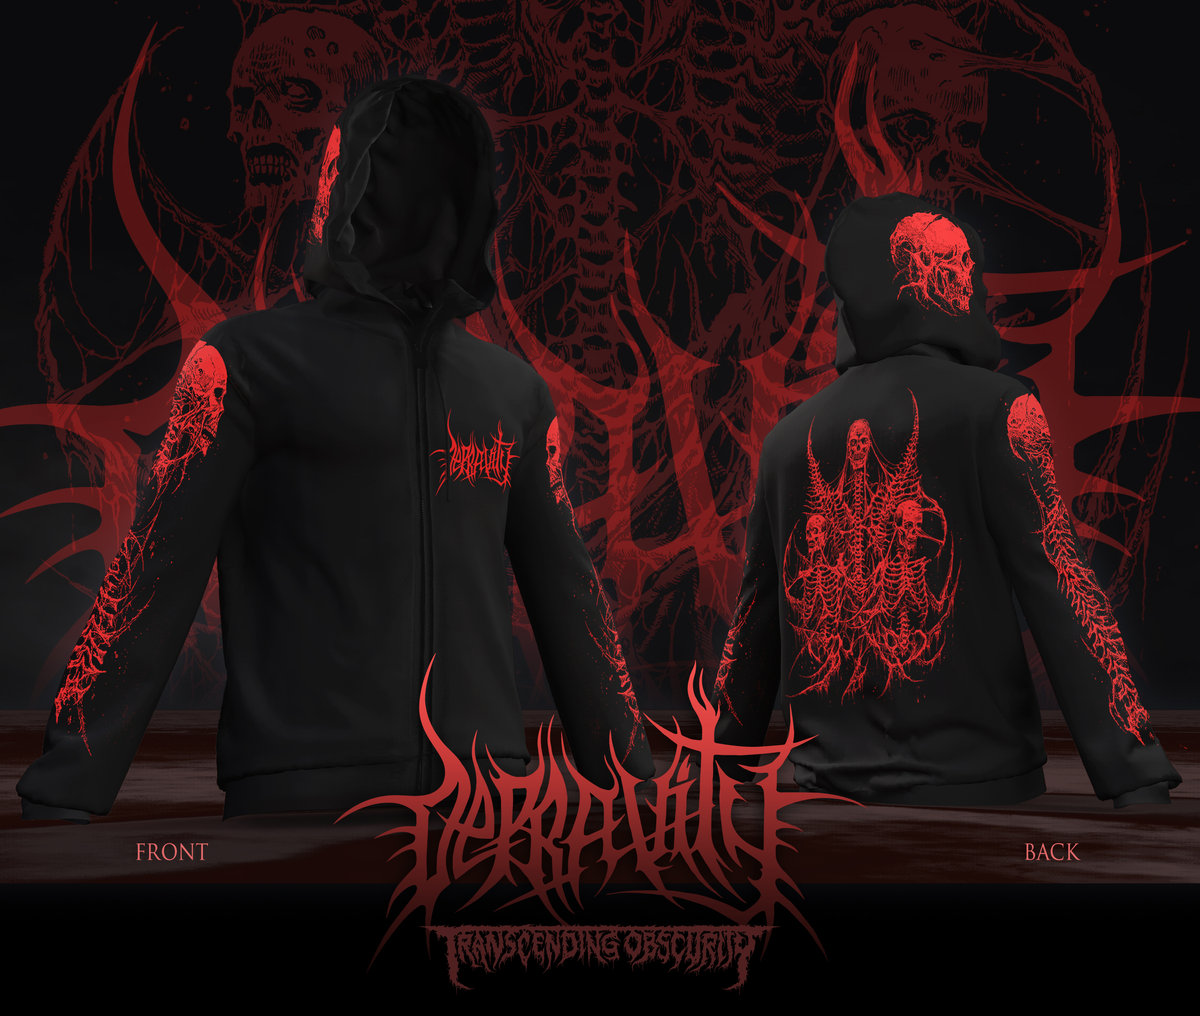 DEPRAVITY Zipped Hoodie Design by Mark Riddick (Limited Edition)